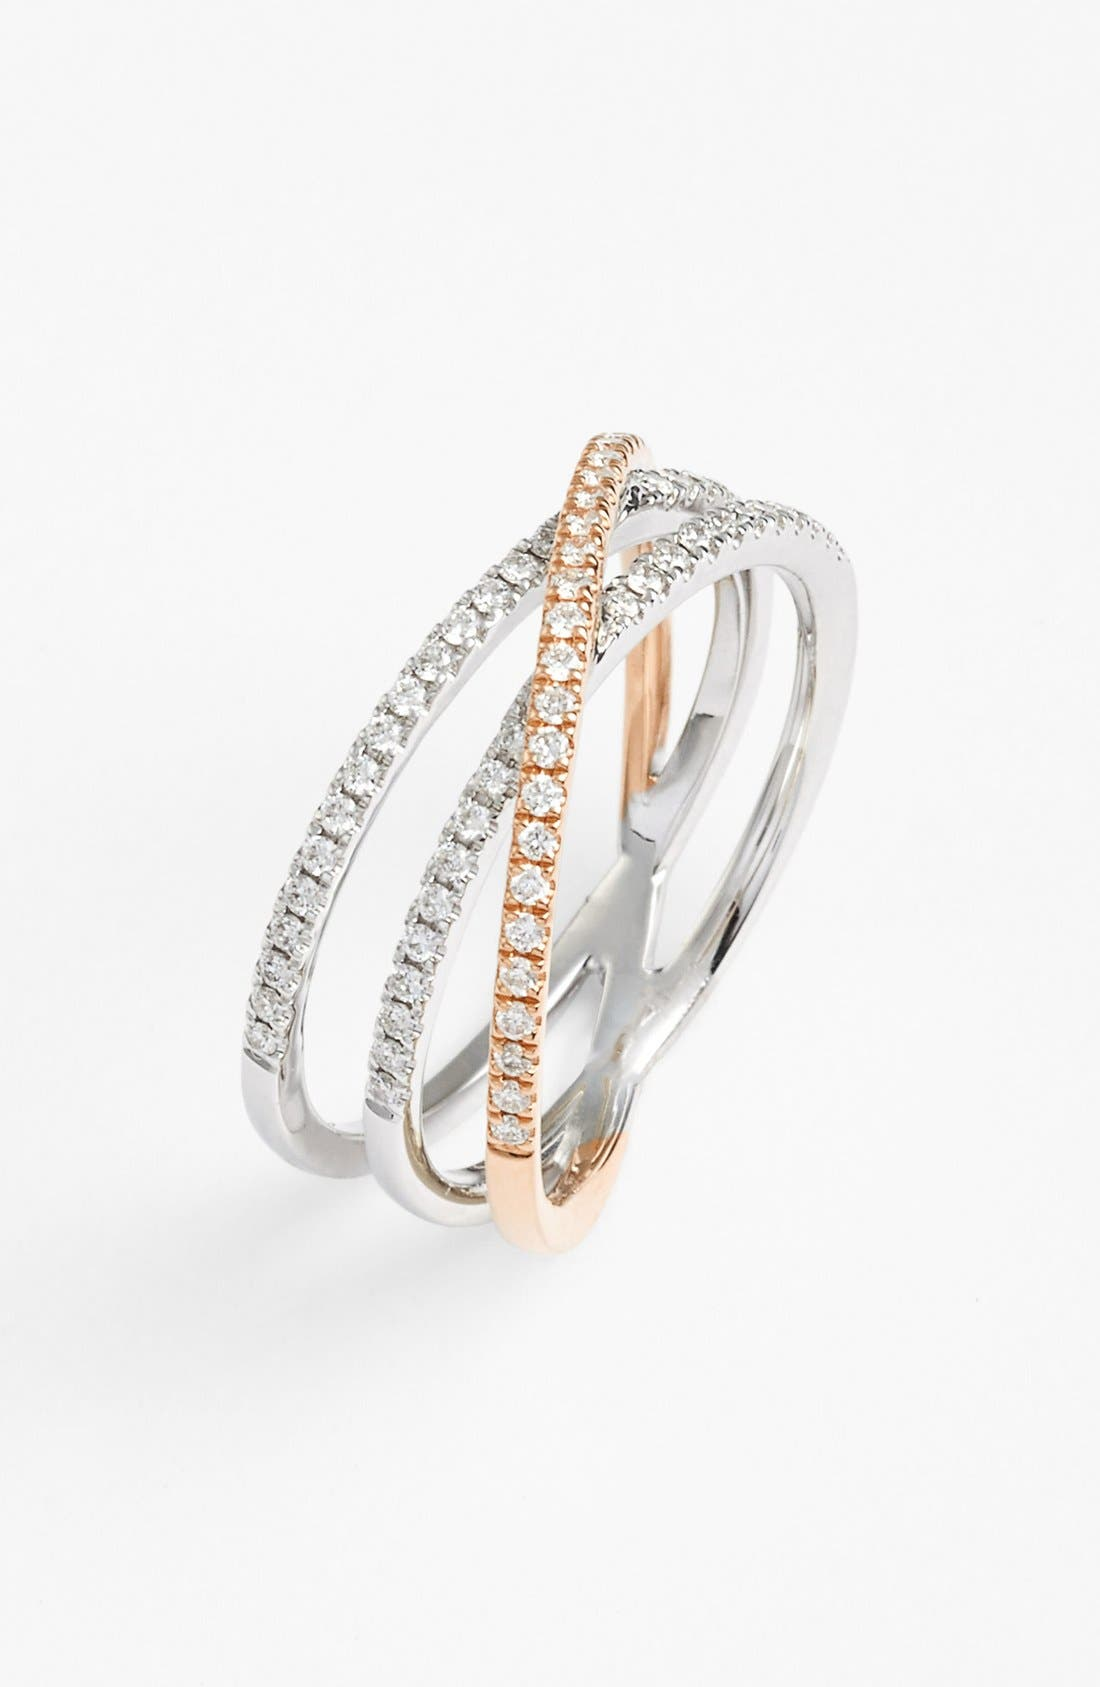 Crossover Three-Row Diamond Ring,                         Main,                         color, White Gold/ Rose Gold